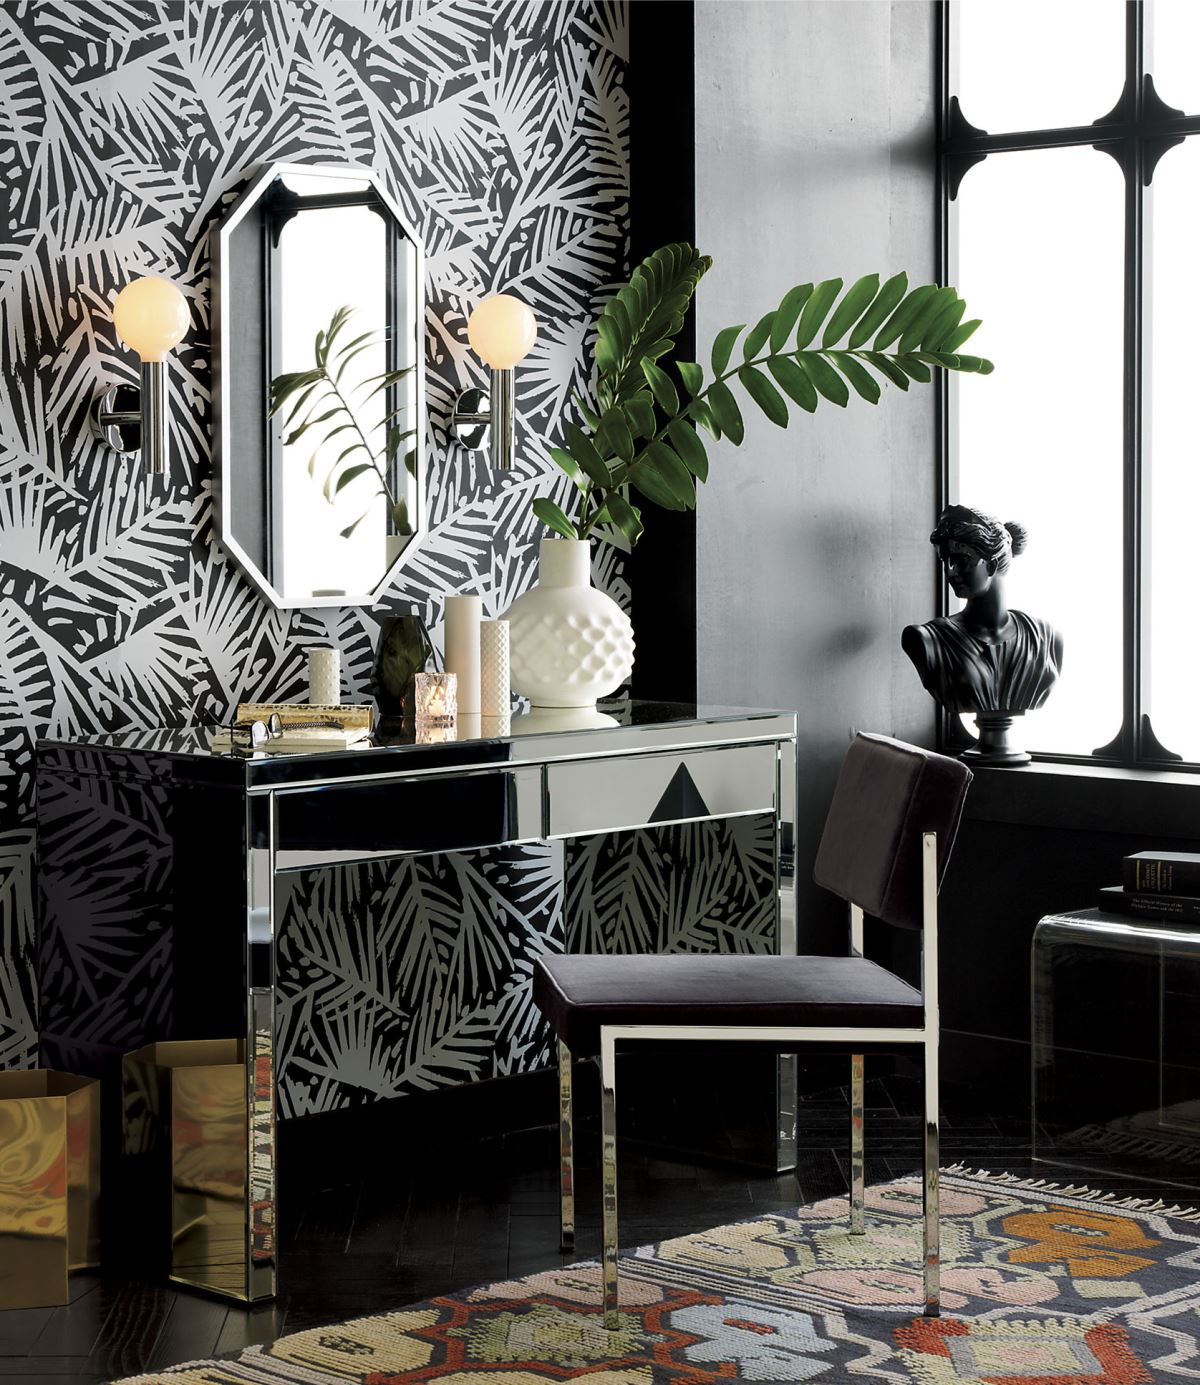 8 luxury home decor ideas with dark furniture pieces